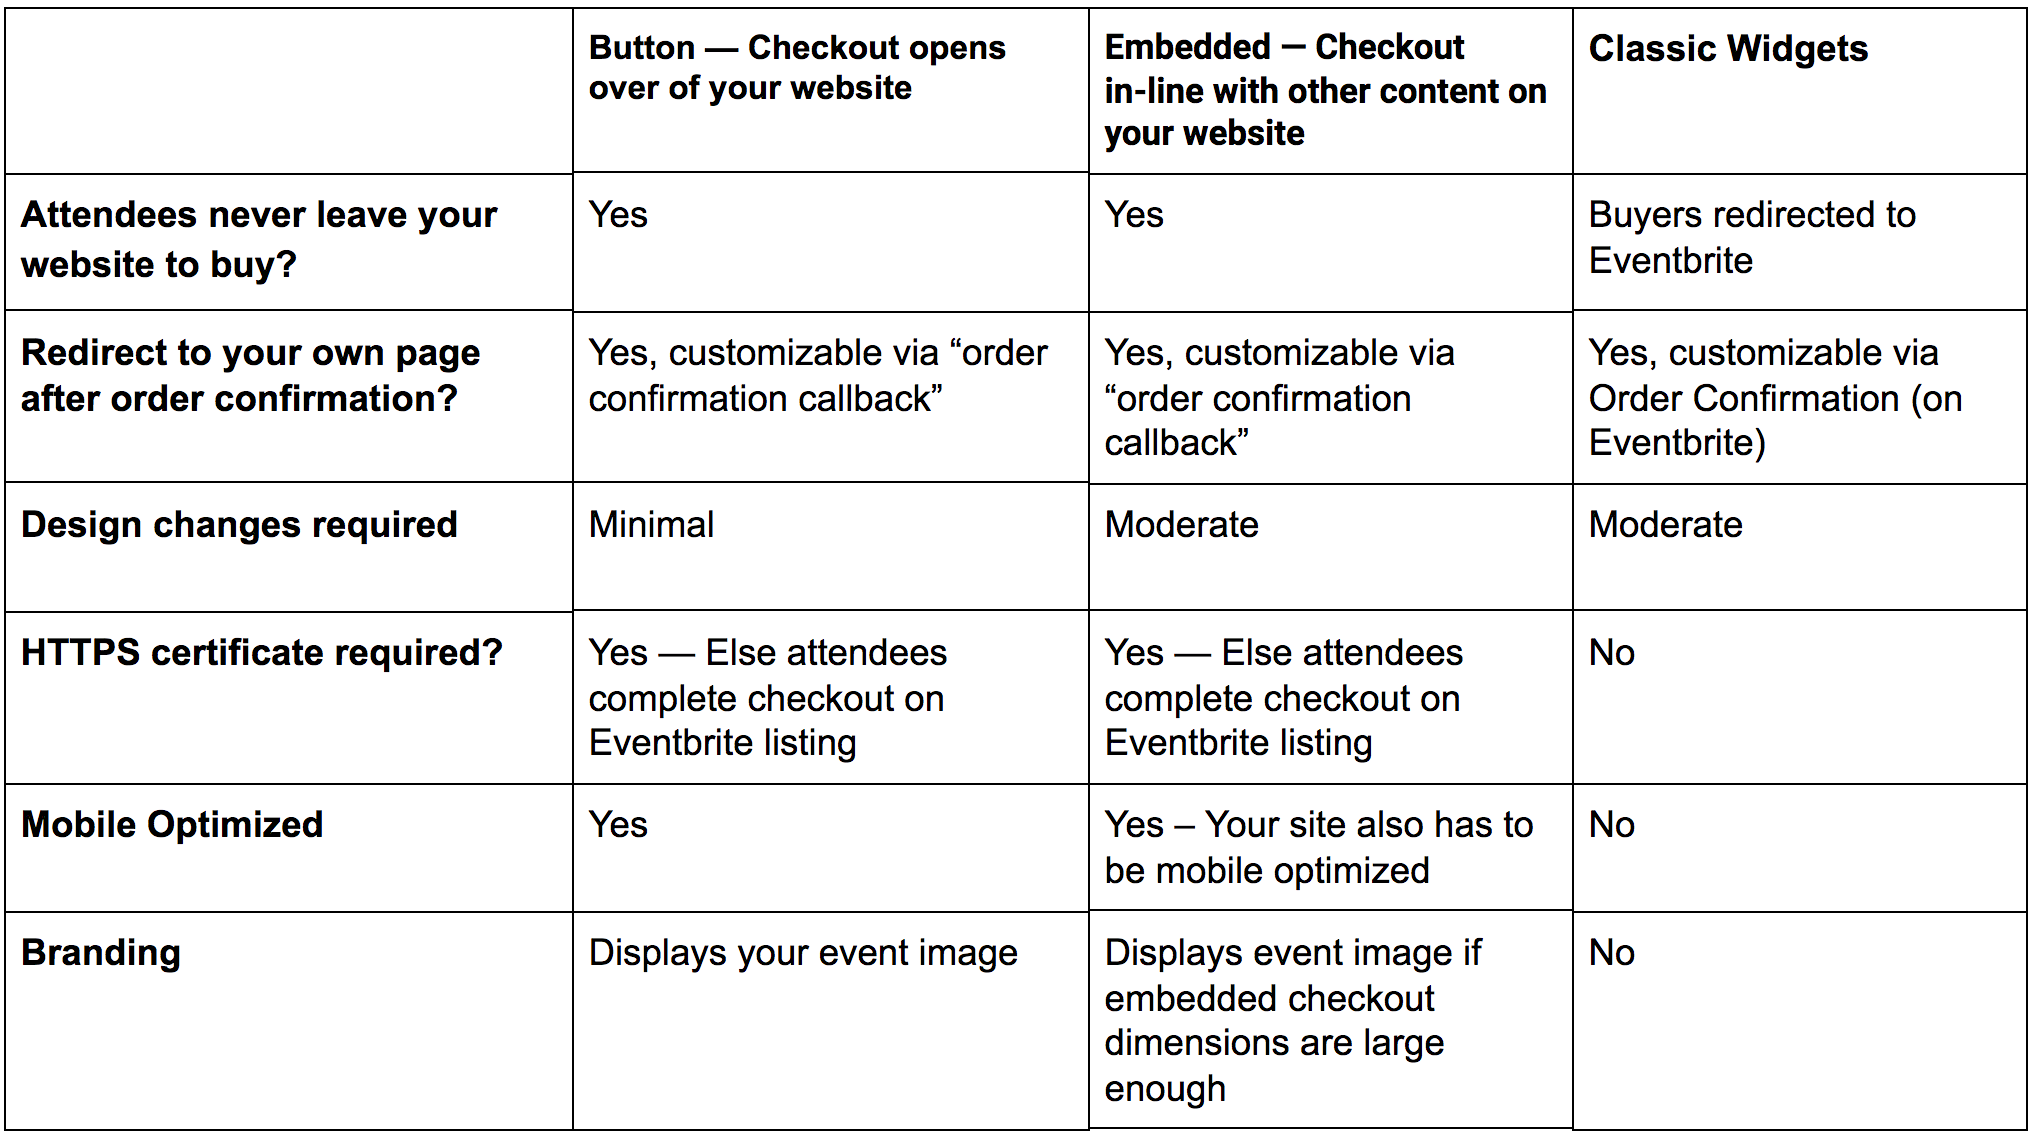 Embedded checkout options at a glance.